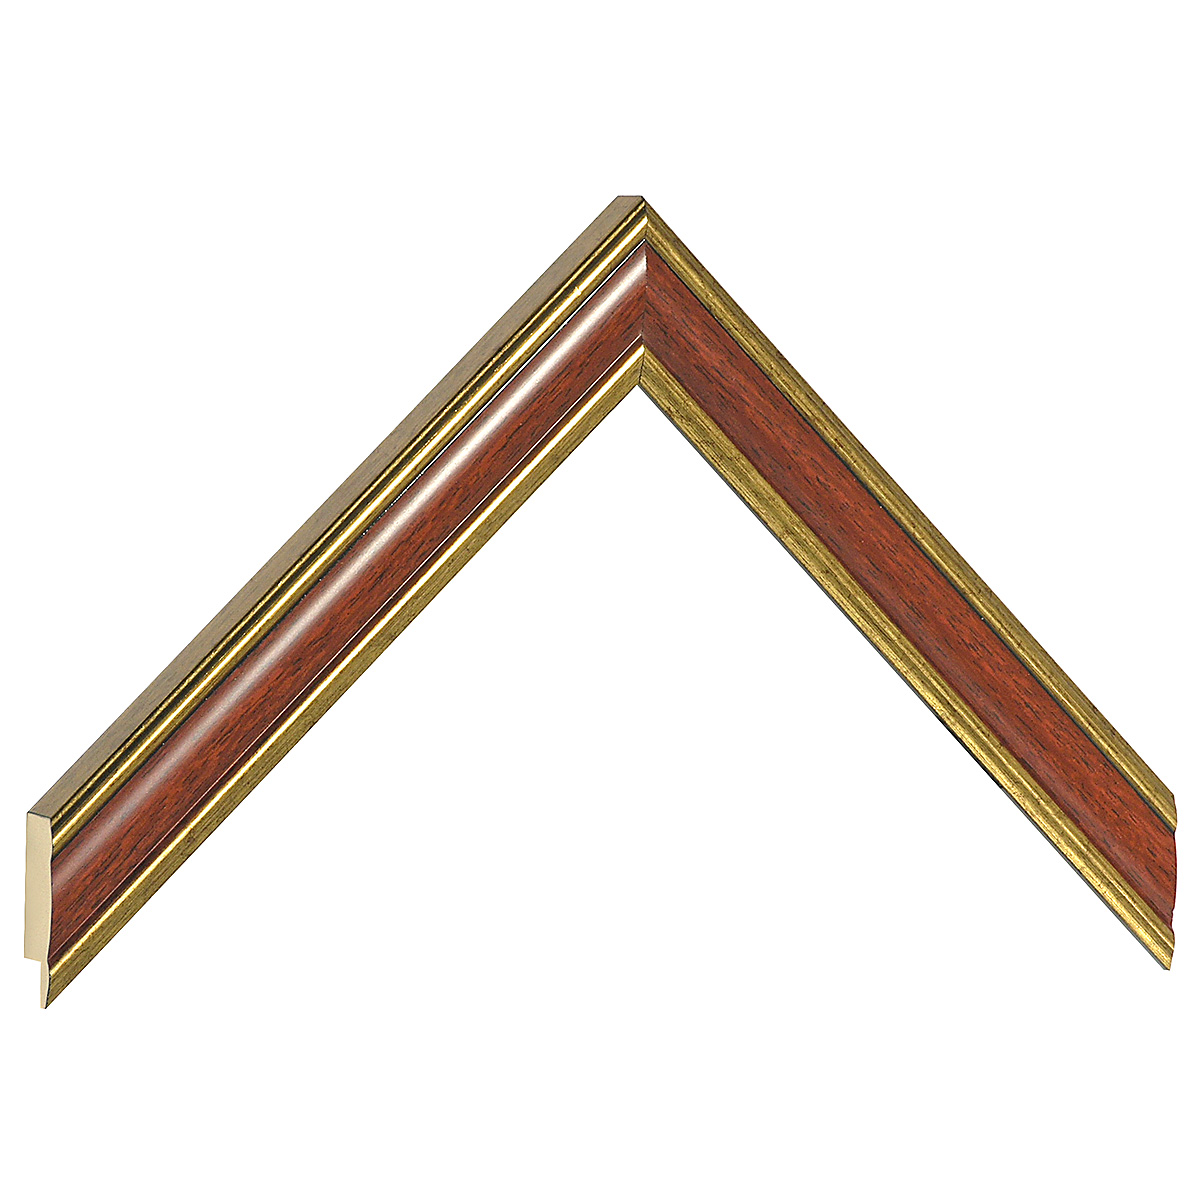 Moulding ayous - Width 23mm - Gold with mahogany band